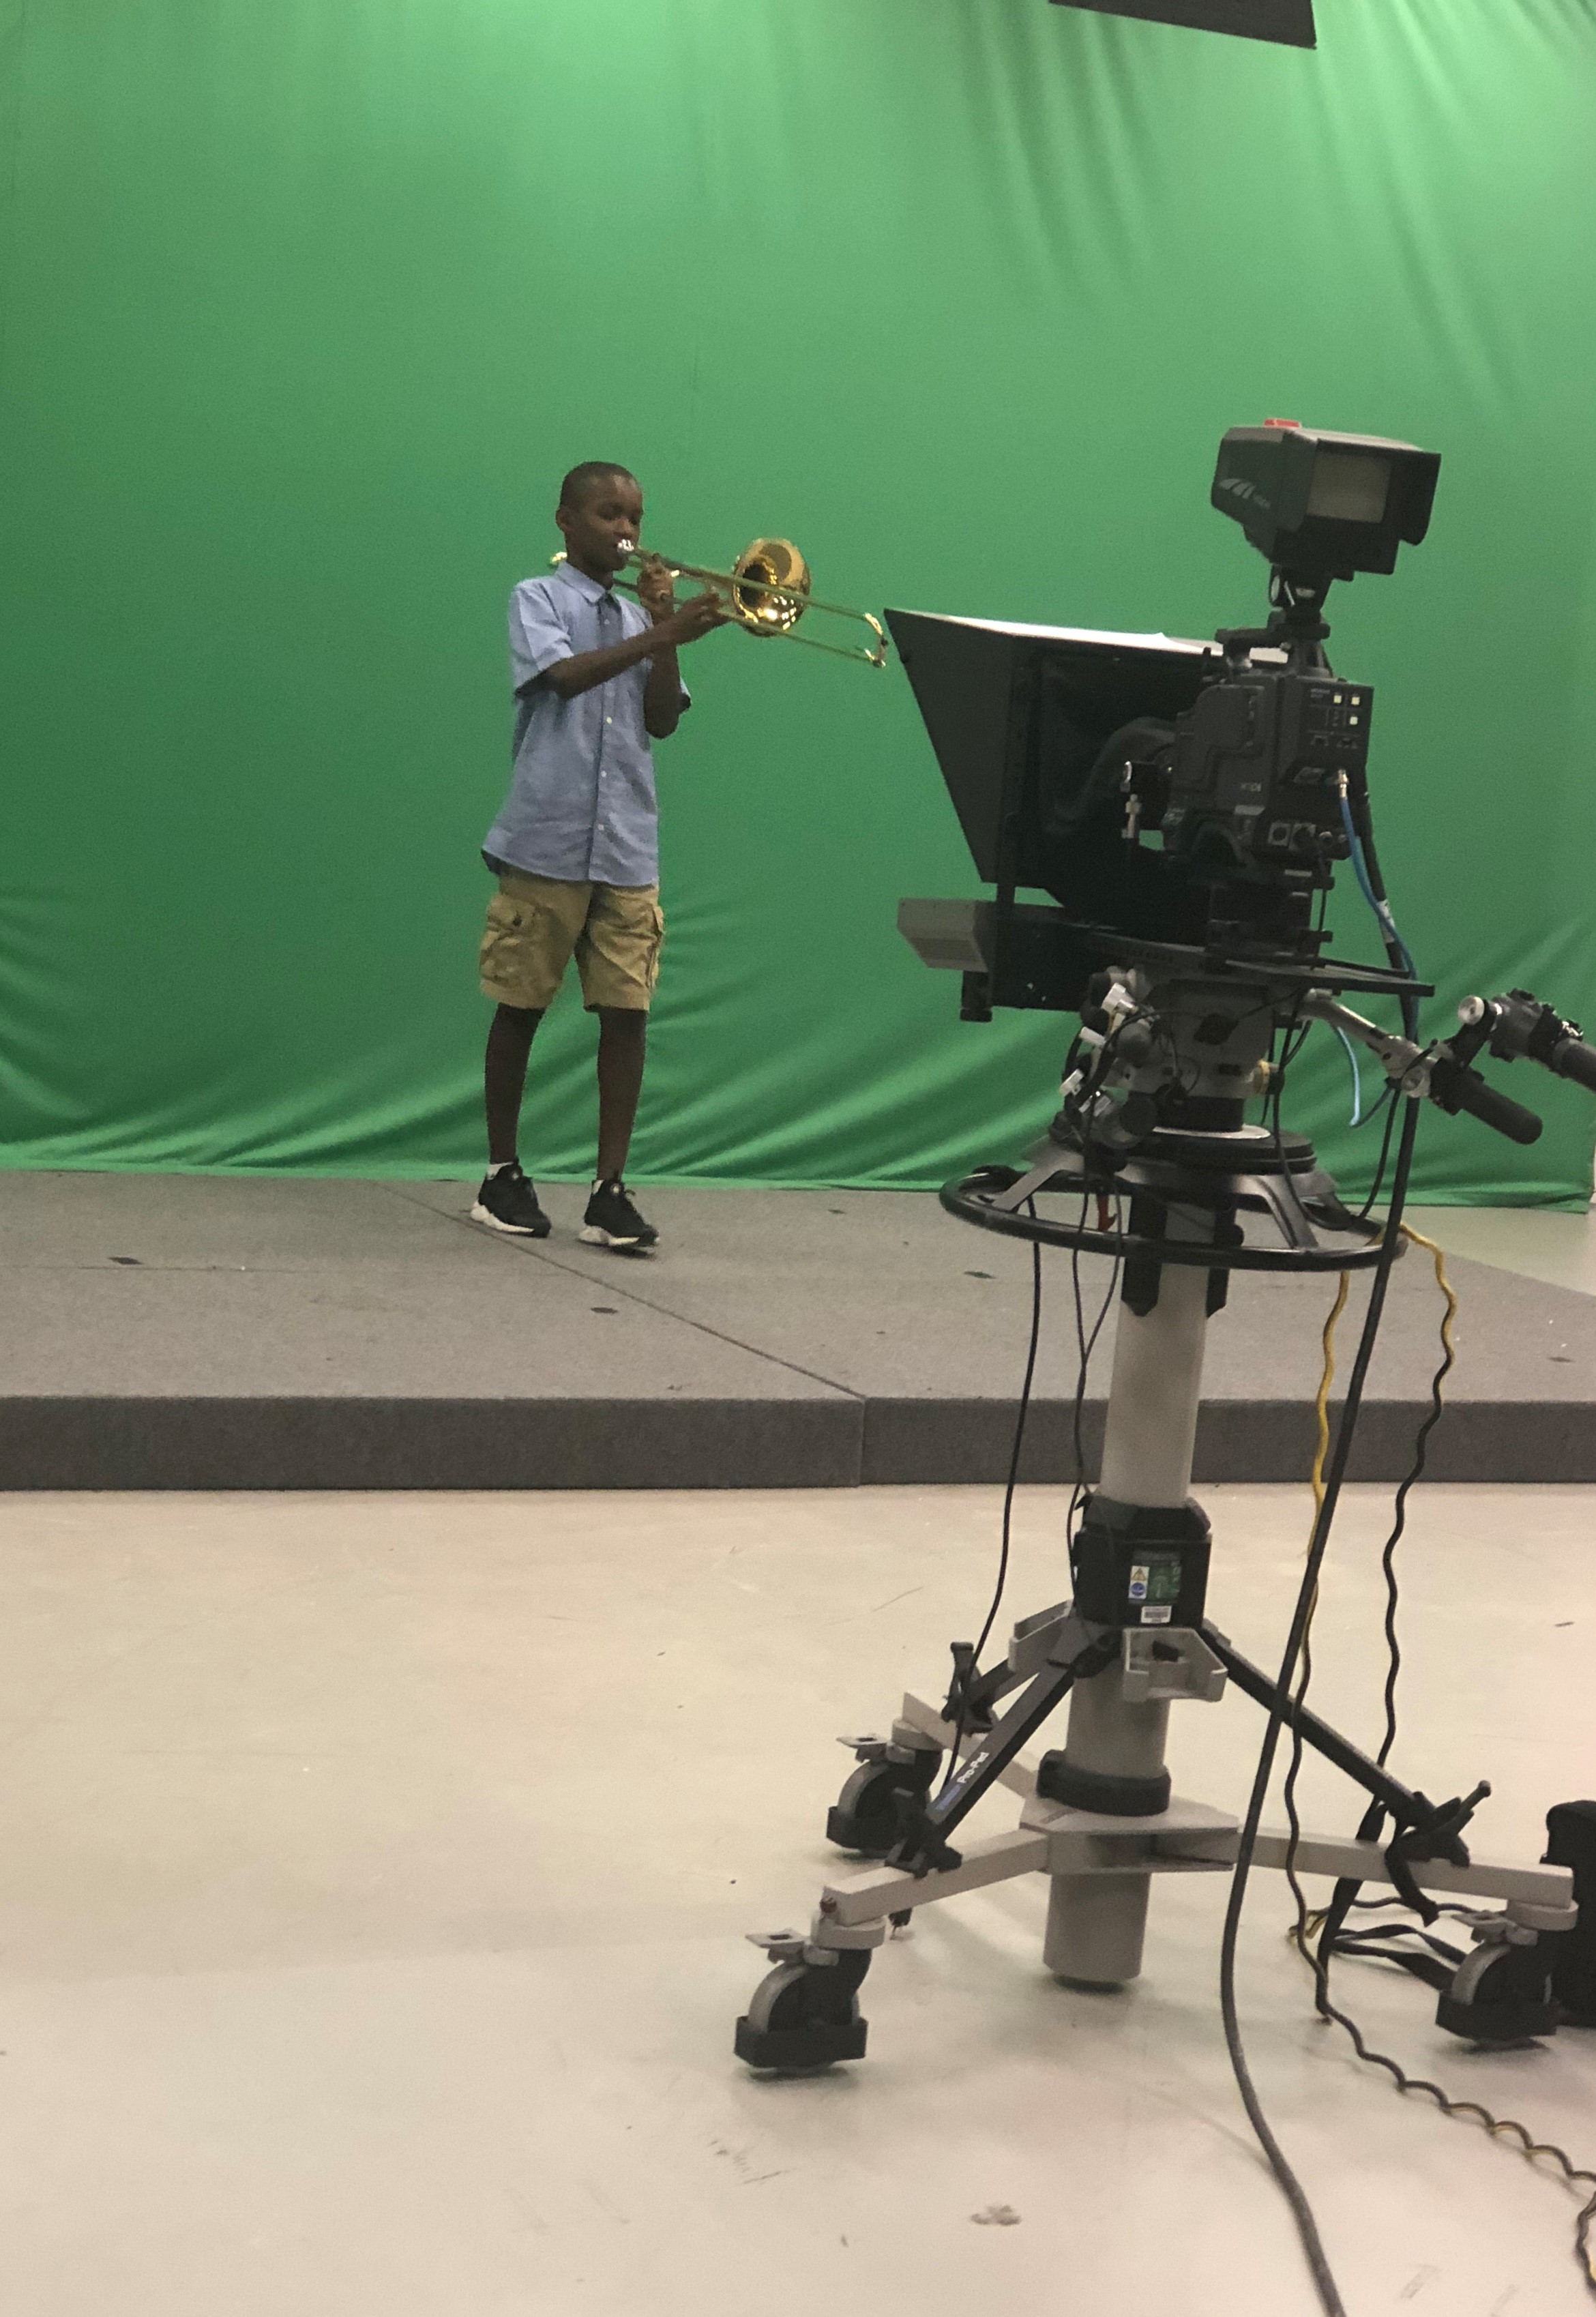 Displaying my musical talents during a special segment on a children's program